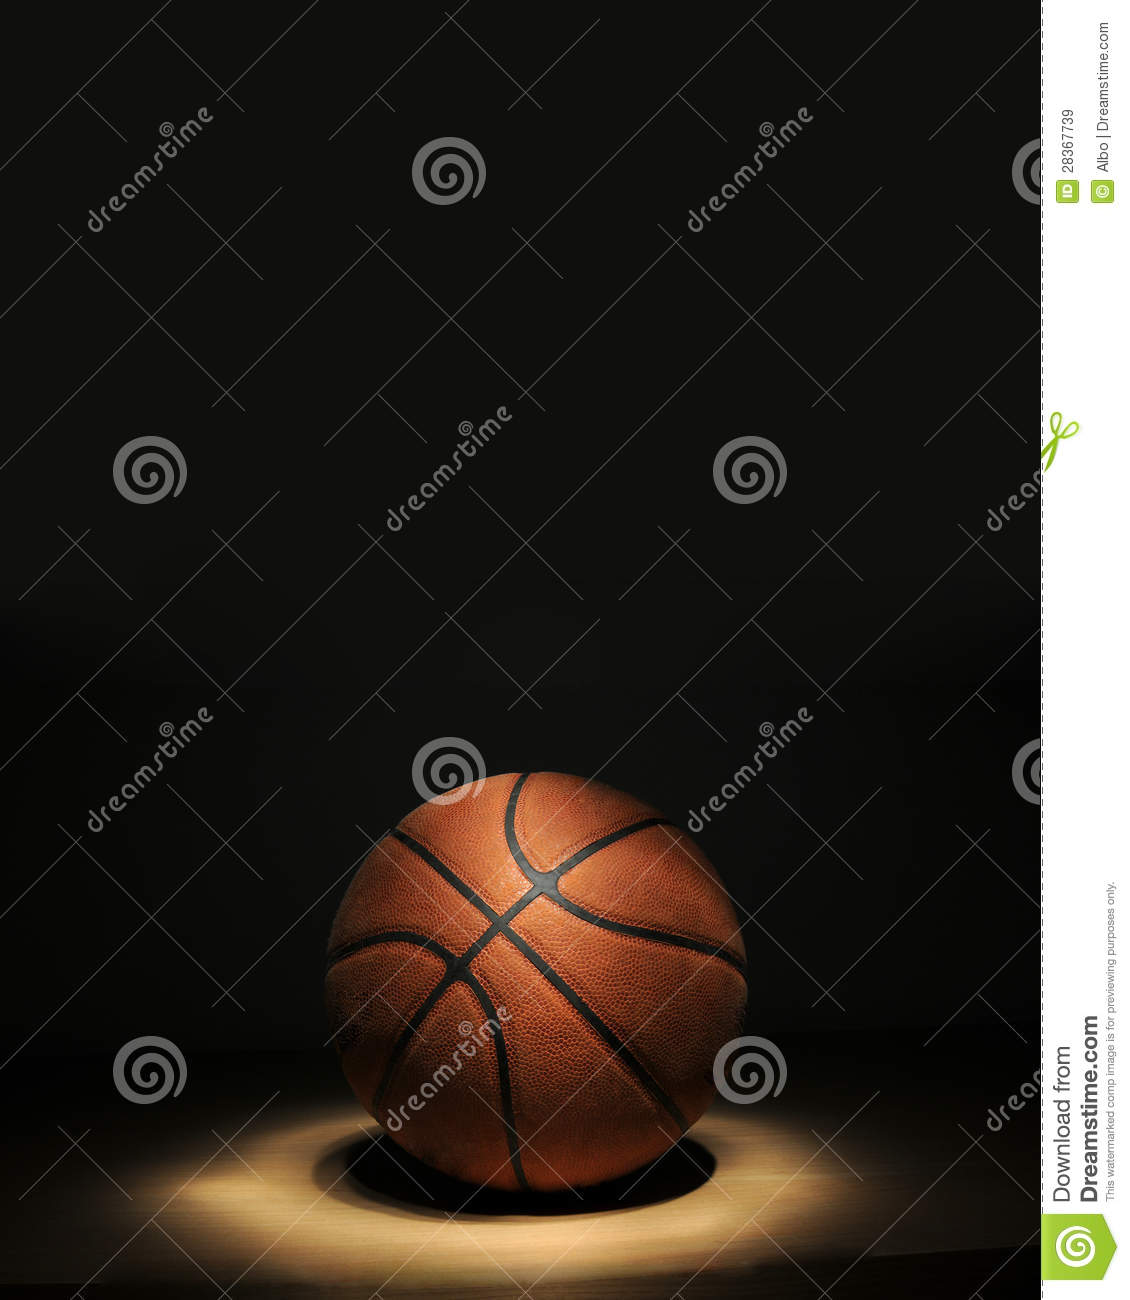 Bille de basket-ball